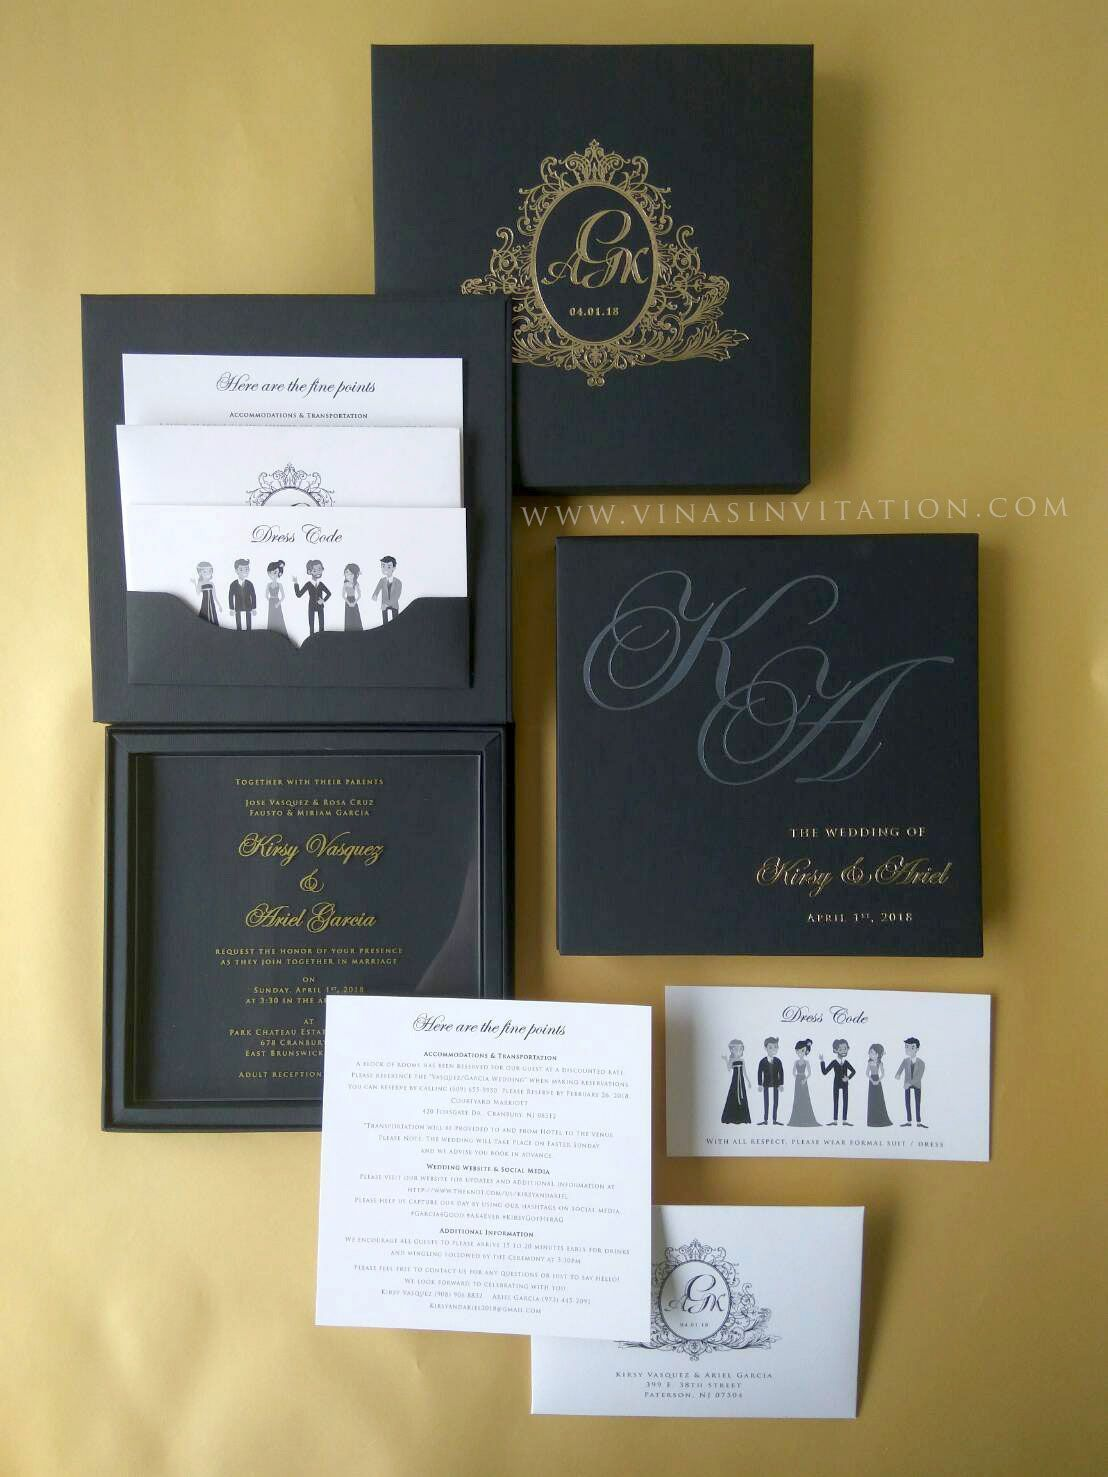 Vinas Invitation Australian Wedding Acrylic Invitation Perspex